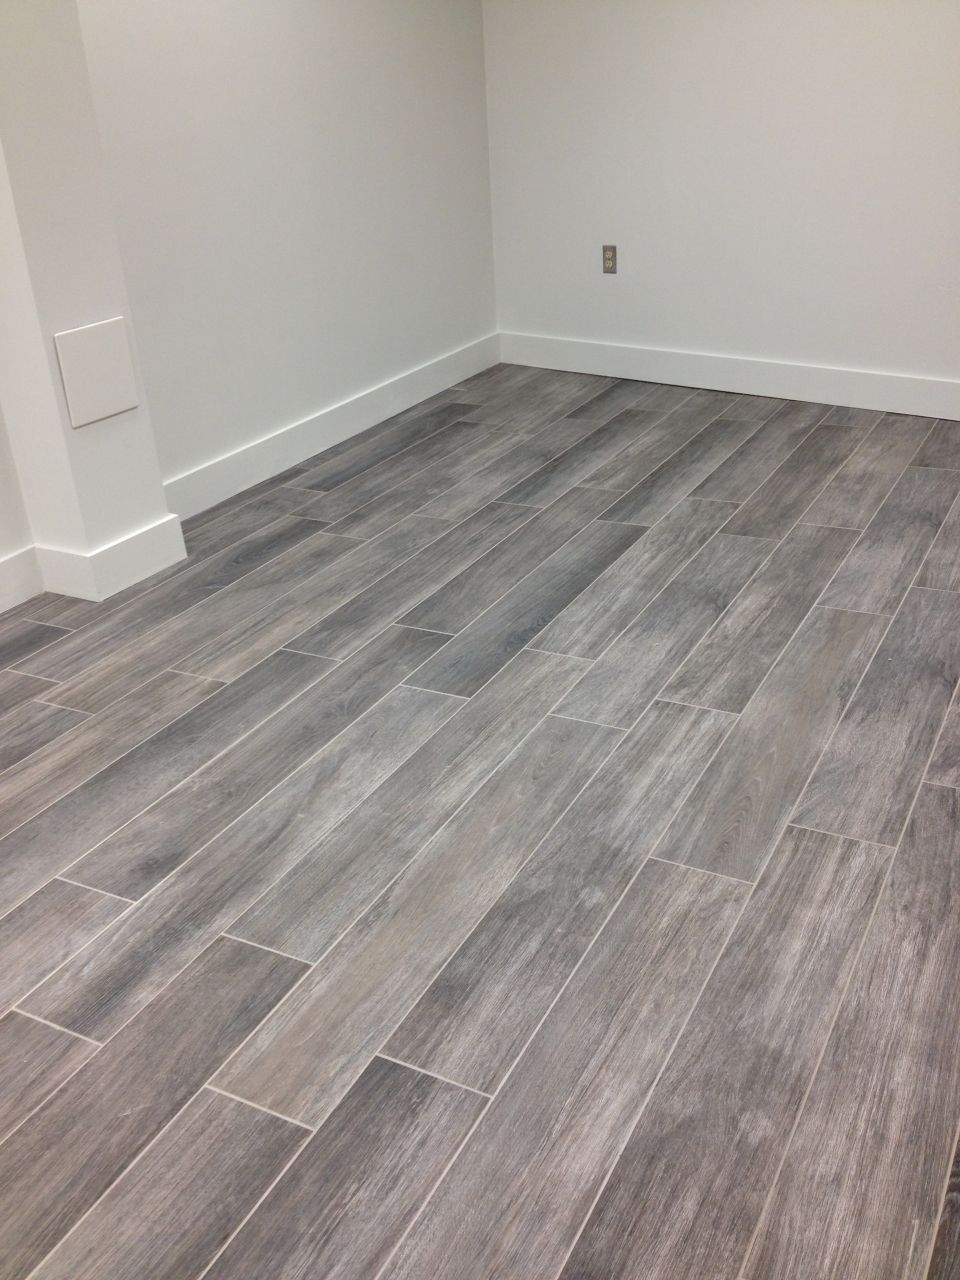 Gray Wood Tile Floor No3lcd6n8 Homes Pinterest Wood Tile Floors Tile Flooring And Woods